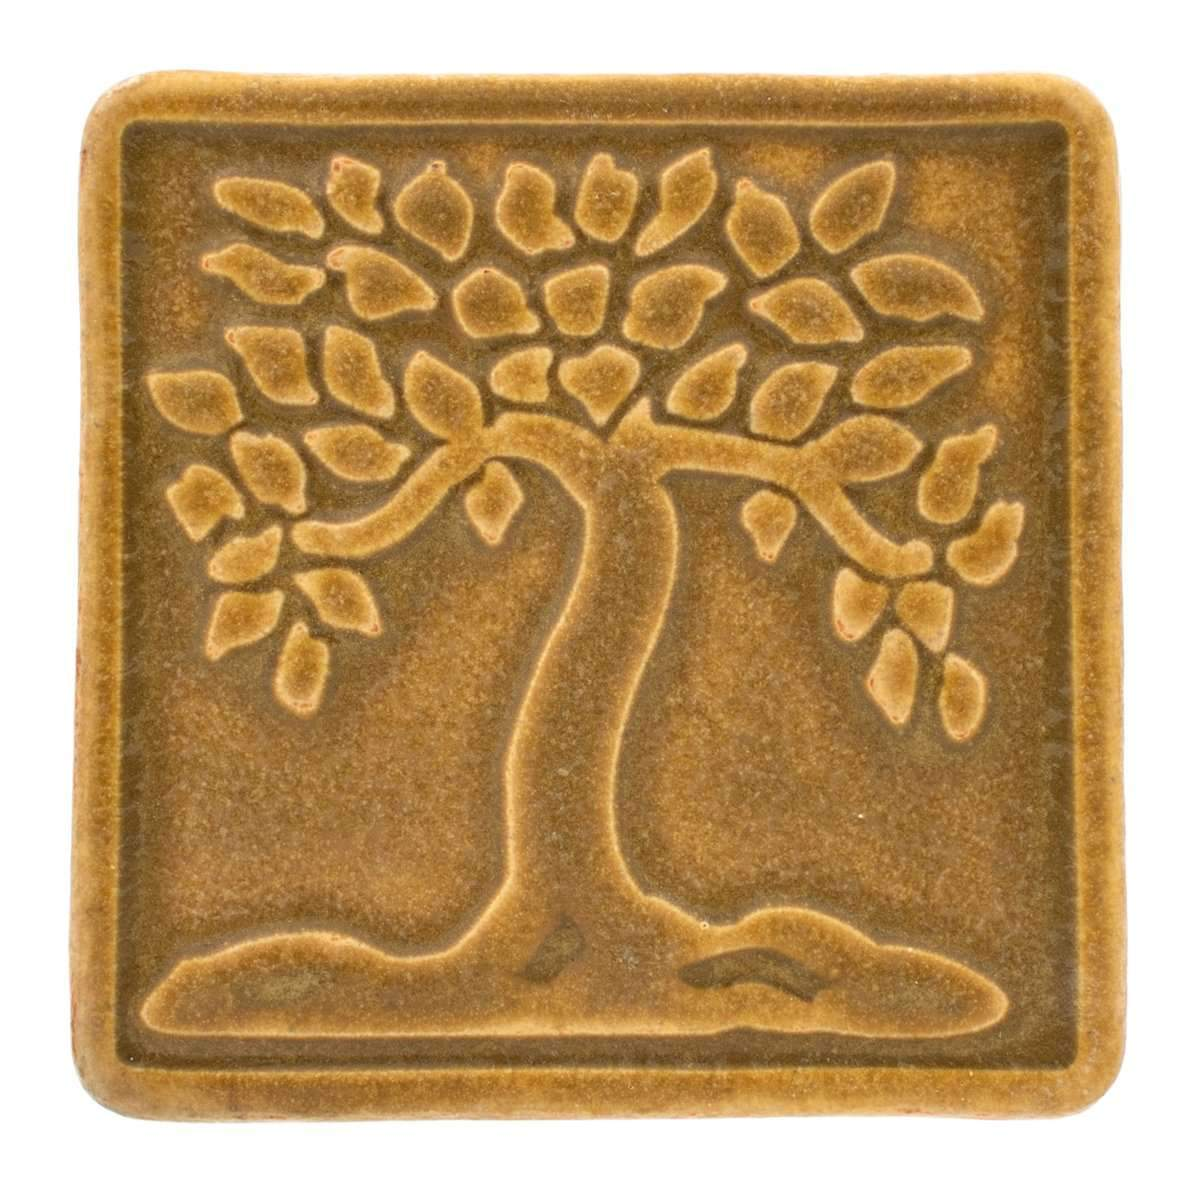 4x4 Botanical Tree Pewabic Tile - Wheat